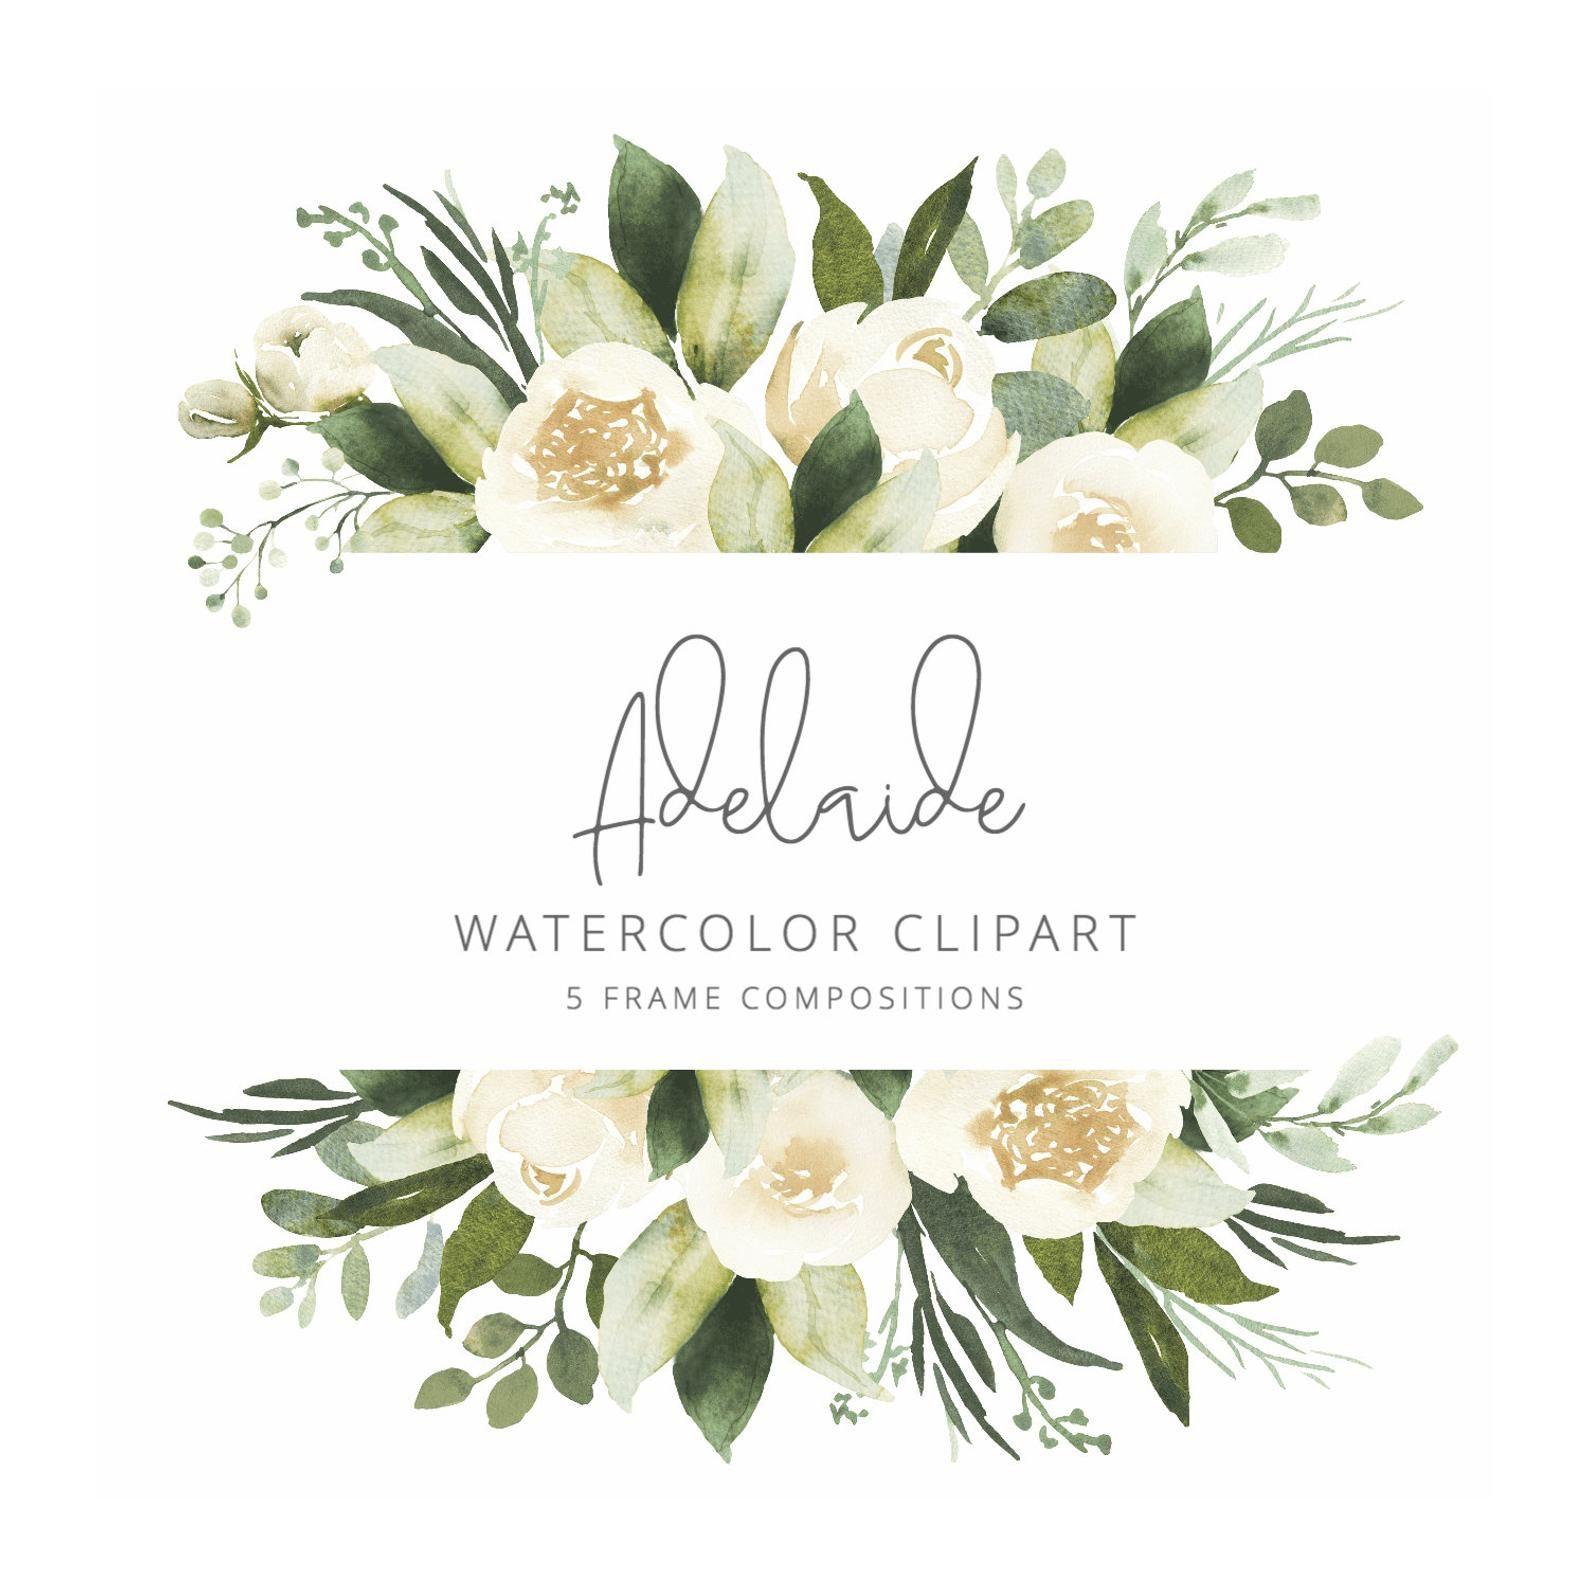 Adelaide Watercolor Clipart With White Roses And Eucalyptus